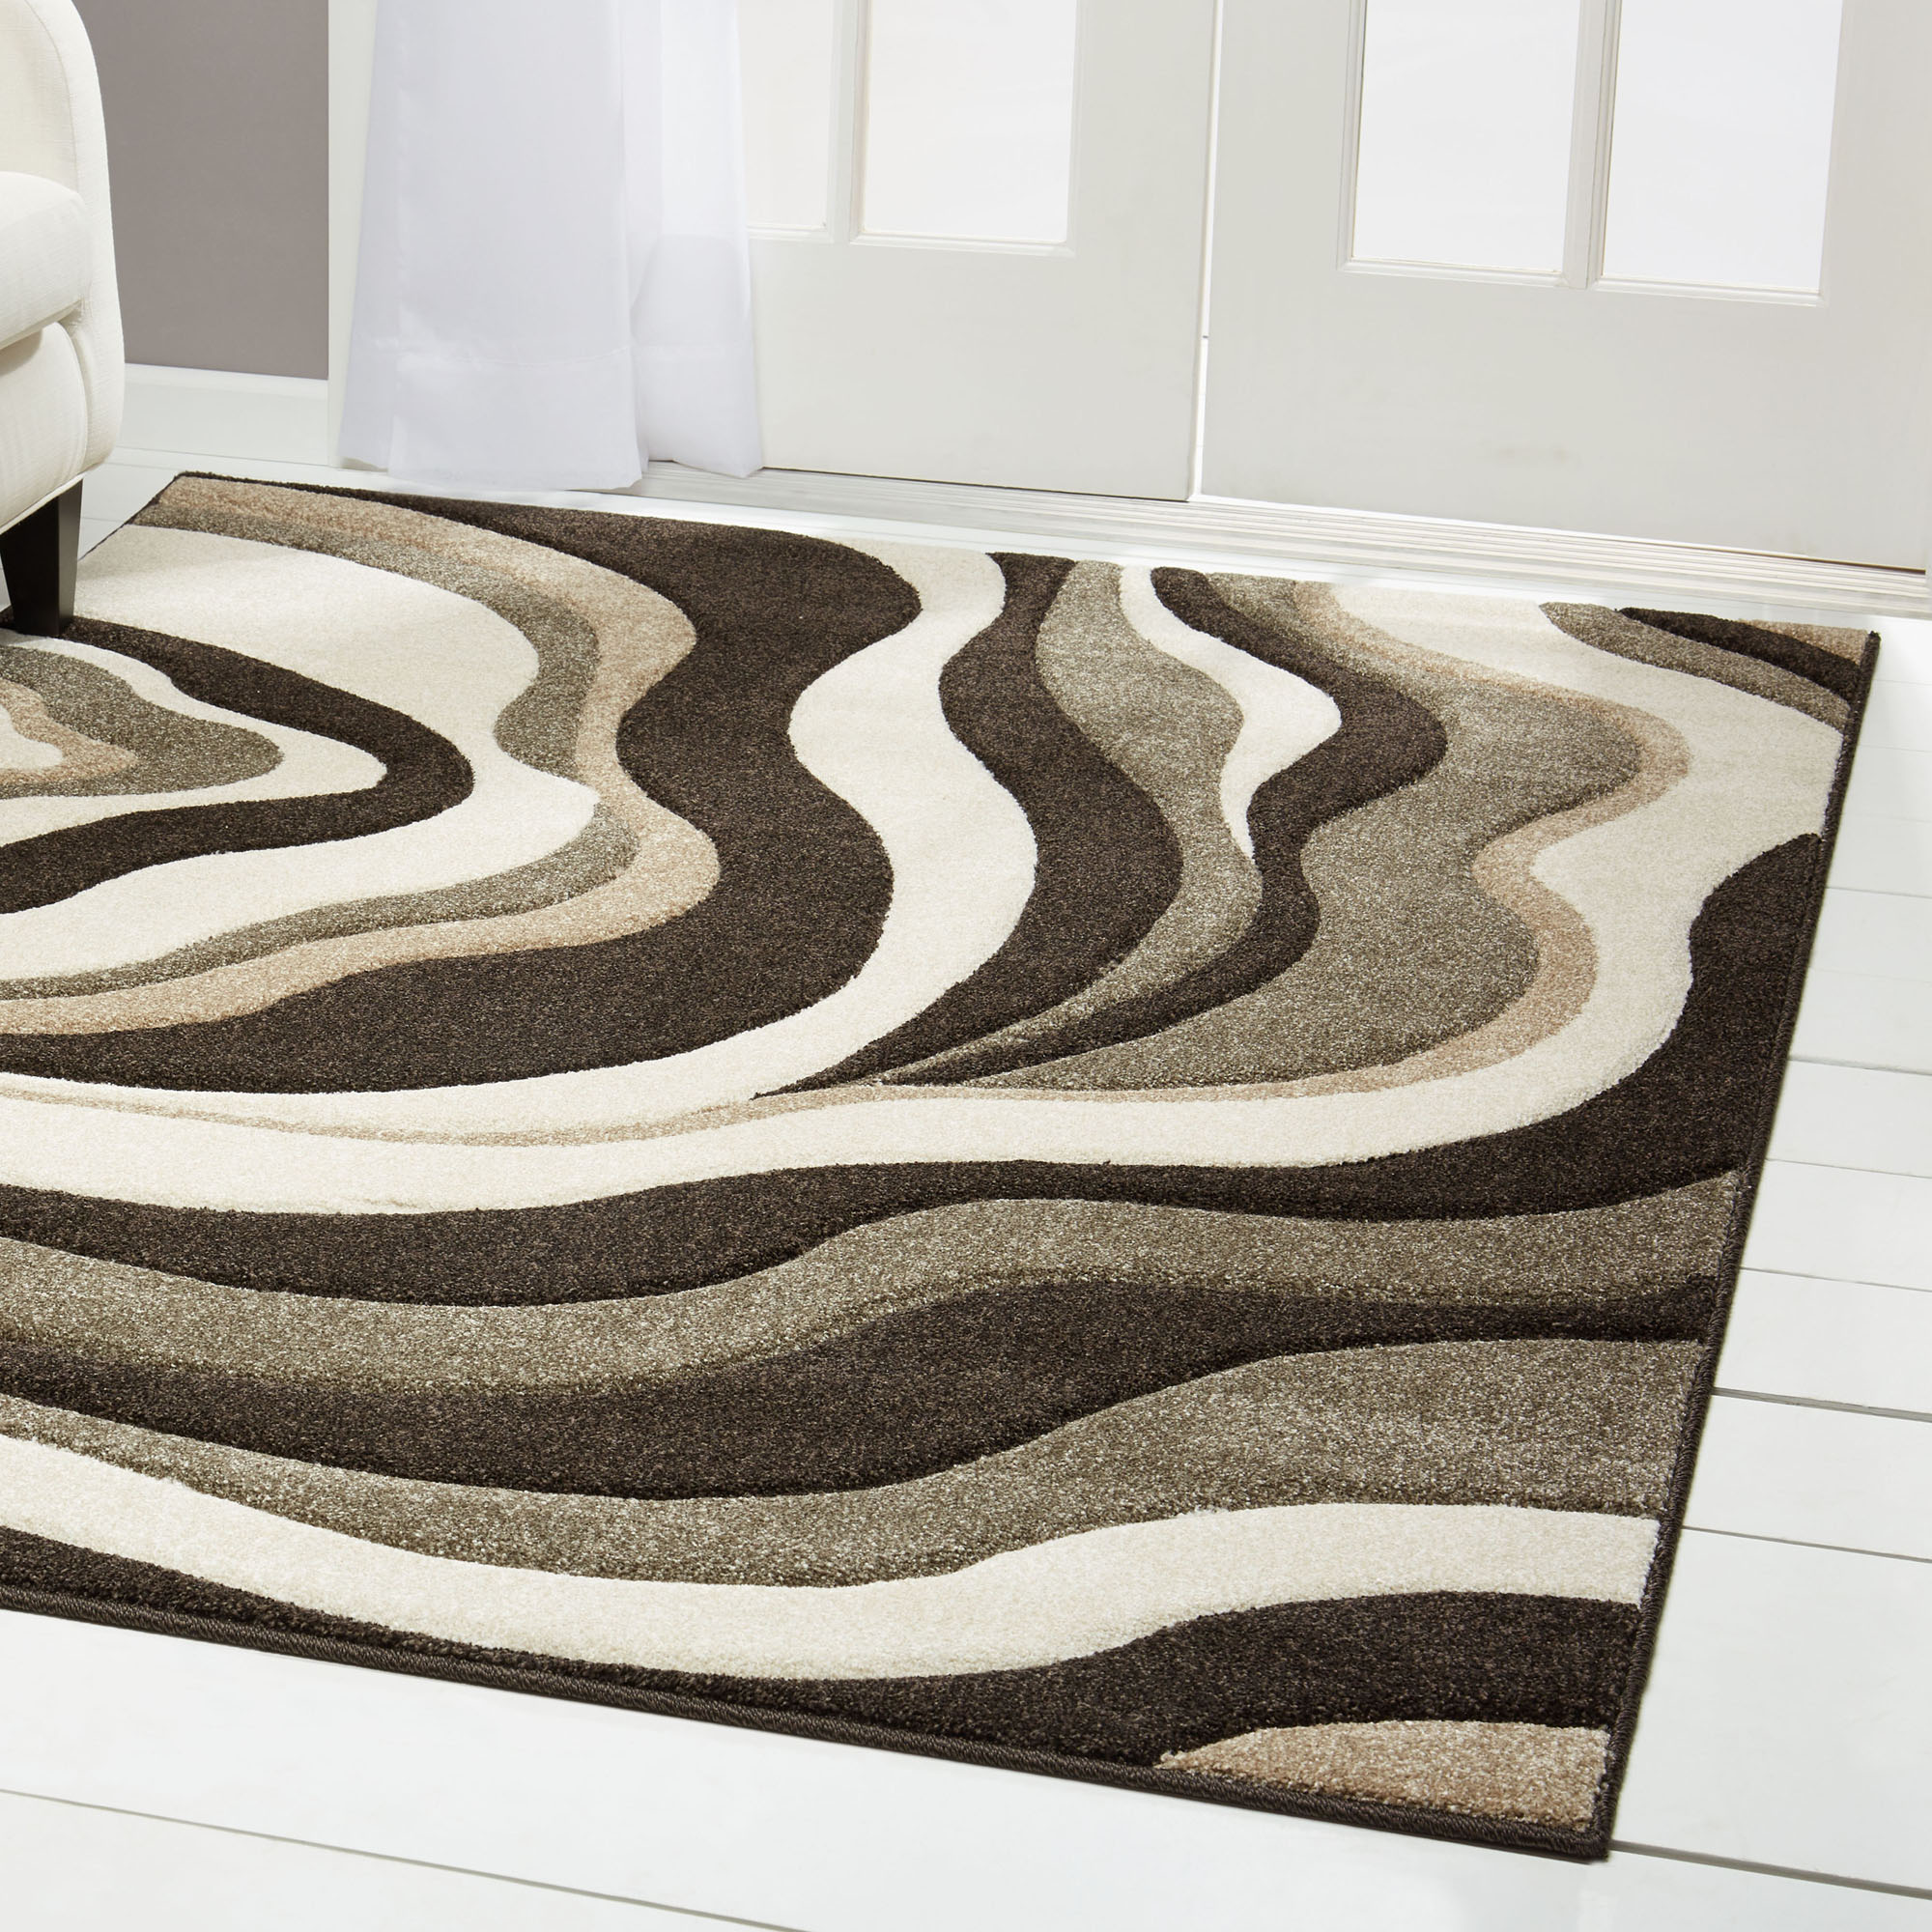 blog to modern rug nights an rugs from styles enduring its ancient hero sheer derives oasis coulter transform into ancestry area also virtually s has any this it ability appeal of magical inspiration room the